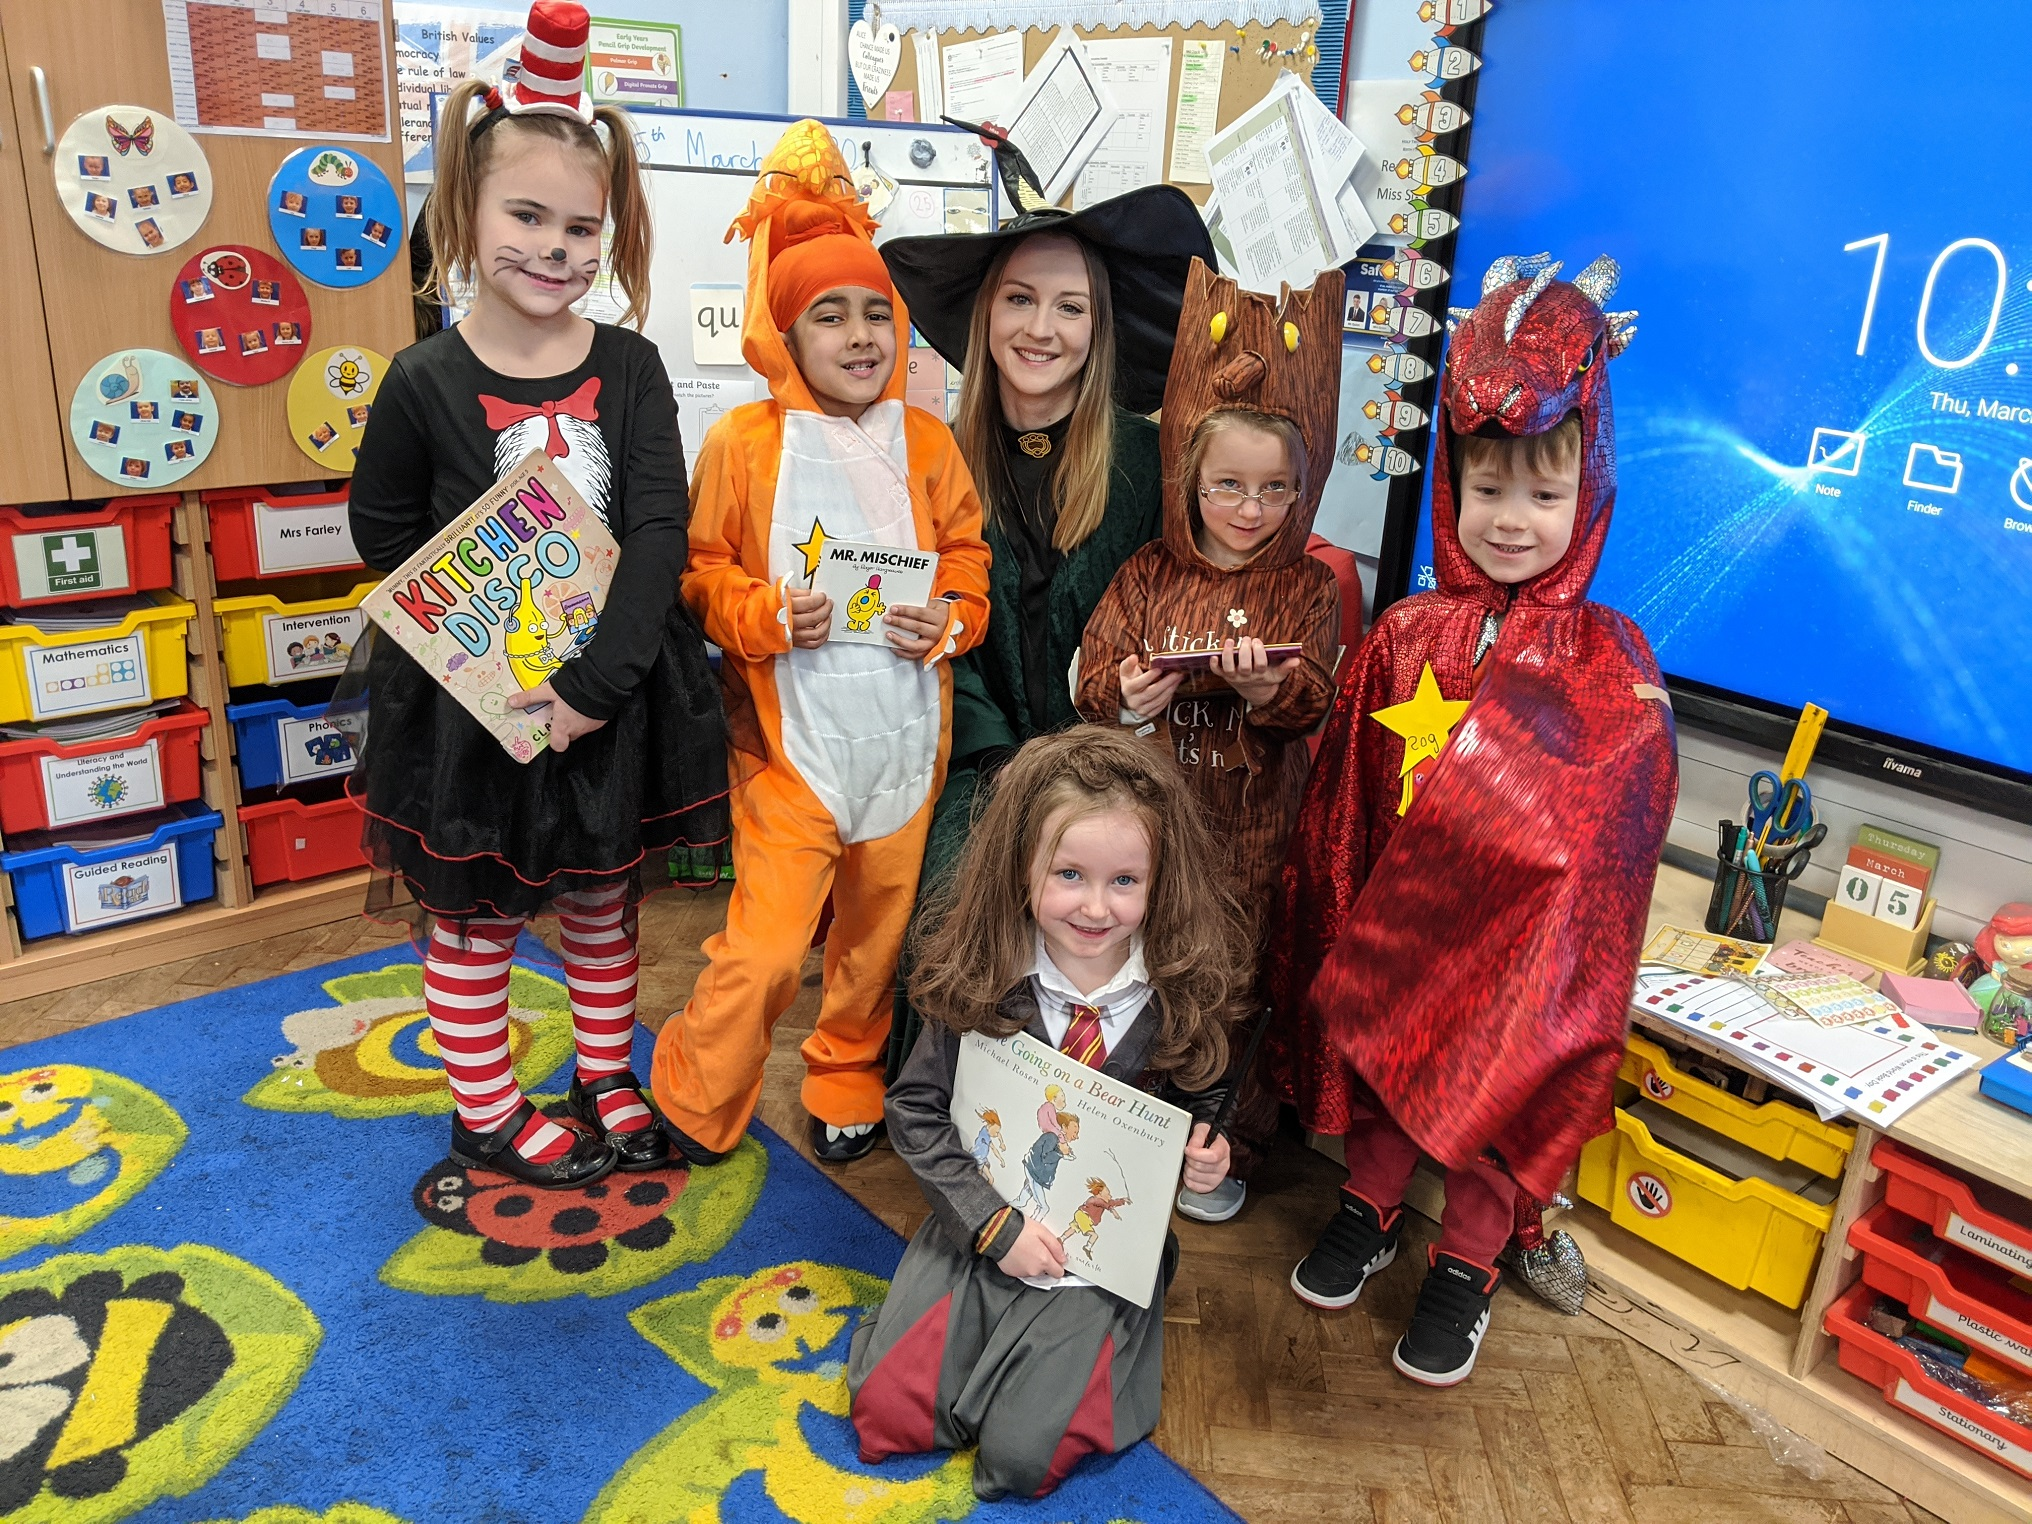 "Droitwich Advertiser: Pupils at Kidderminster's Holy Trinity School and Sixth Form Centre in celebration of World Book Day (WBD), Thursday 5th March, dressed up as their favourite 'Story Heroes' and held a 'Preloved Book Swap' for the school's younger children who each selected a book of their choice to take home for free.This year's celebrations began with the WBD 'Share a Story' campaign which runs from Thursday 27th February all the way through to Sunday 29th March, with all pupils receiving a £1 World Book Day voucher to be exchanged for one of twelve specially published texts available from major supermarkets and bookshops or used at the school's Book Fair at the end of the month.Associate Head for Phase 1 Reading and Phonics, Katherine Slack, said: ""Each year we try to vary how we celebrate World Book Day and this year our theme is 'Story Heroes' with all pupils from Reception to Year 8 and staff encouraged to dress up as a hero or heroine from a book, comic or graphic novel. Older pupils have been asked to select a quote spoken by their chosen hero, which will be displayed in school. This year the school has also registered to take part in World Book Day 'Share a Story' campaign which aims to share a MILLION stories during World Book Day month.""The day also included creative comic strip and superhero bookmark competitions and a World Book Day Superhero themed lunch of Marvel pork meatballs and Spiderman spaghetti, Superman vegetable burgers with Incredible potatoes, Green Lantern peas, Captain America carrots and Super Power chocolate cake. Local artist and cartoonist, Geoff Tristram, delivered entertaining and instructive workshops to aspiring illustrators and a school governor shared why there is nothing better to read than children's literature.  Added Miss Slack: ""Sharing stories in school and at home should be as non-negotiable as feeding your child. Even if your child is struggling to develop their reading skills, nurture their love of stories and your child will be motivated to persevere."""